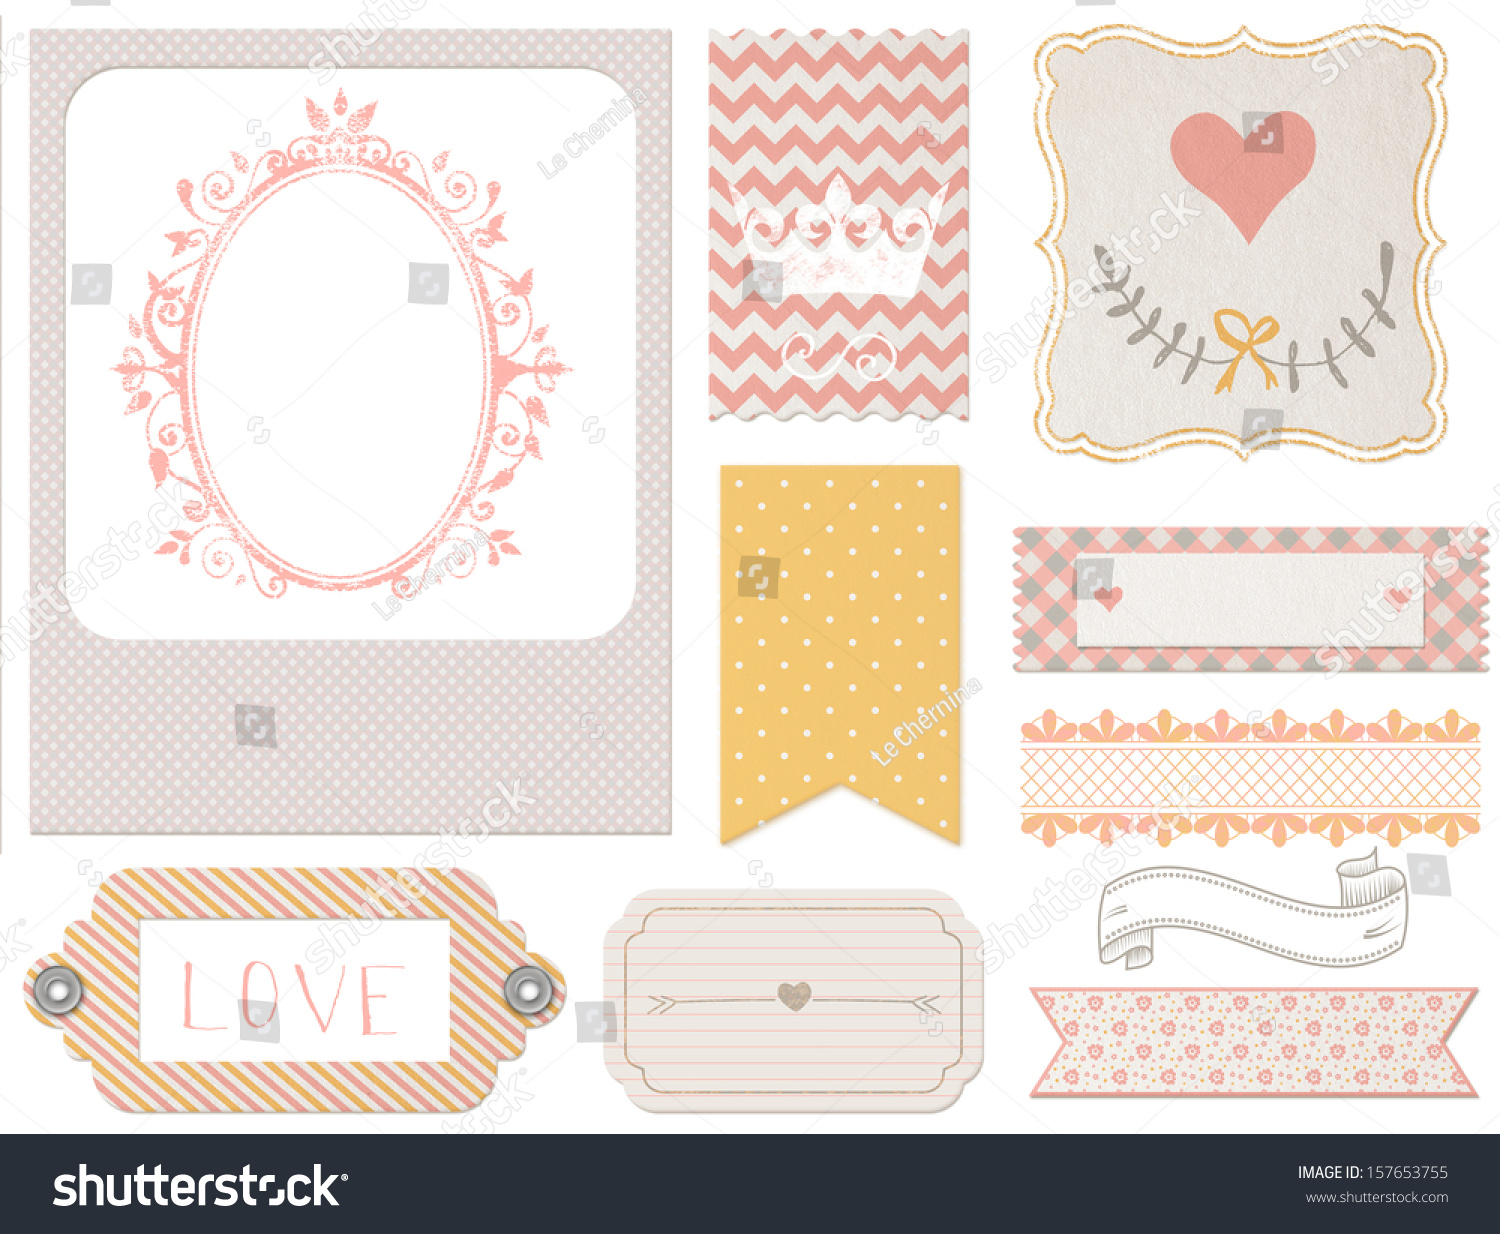 Vintage Scrapbook Elements Photo Frames Tags Stock Illustration ...